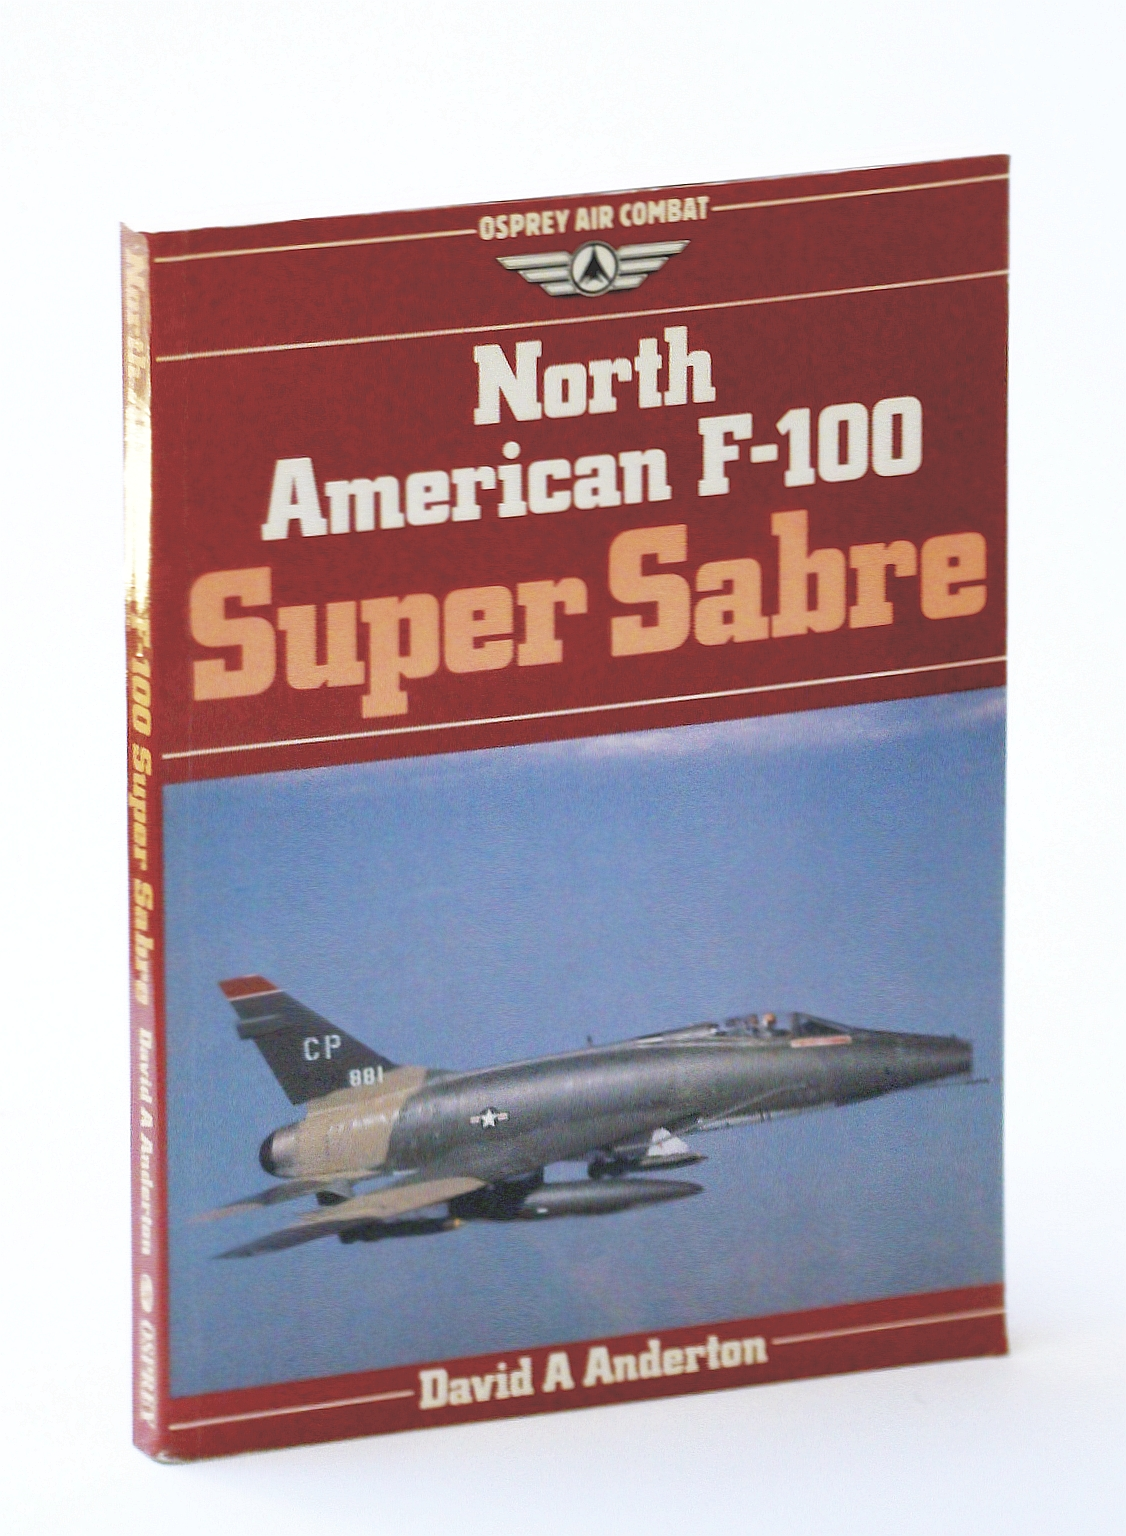 Image for North American F-100 Super Sabre (Osprey Air Combat)